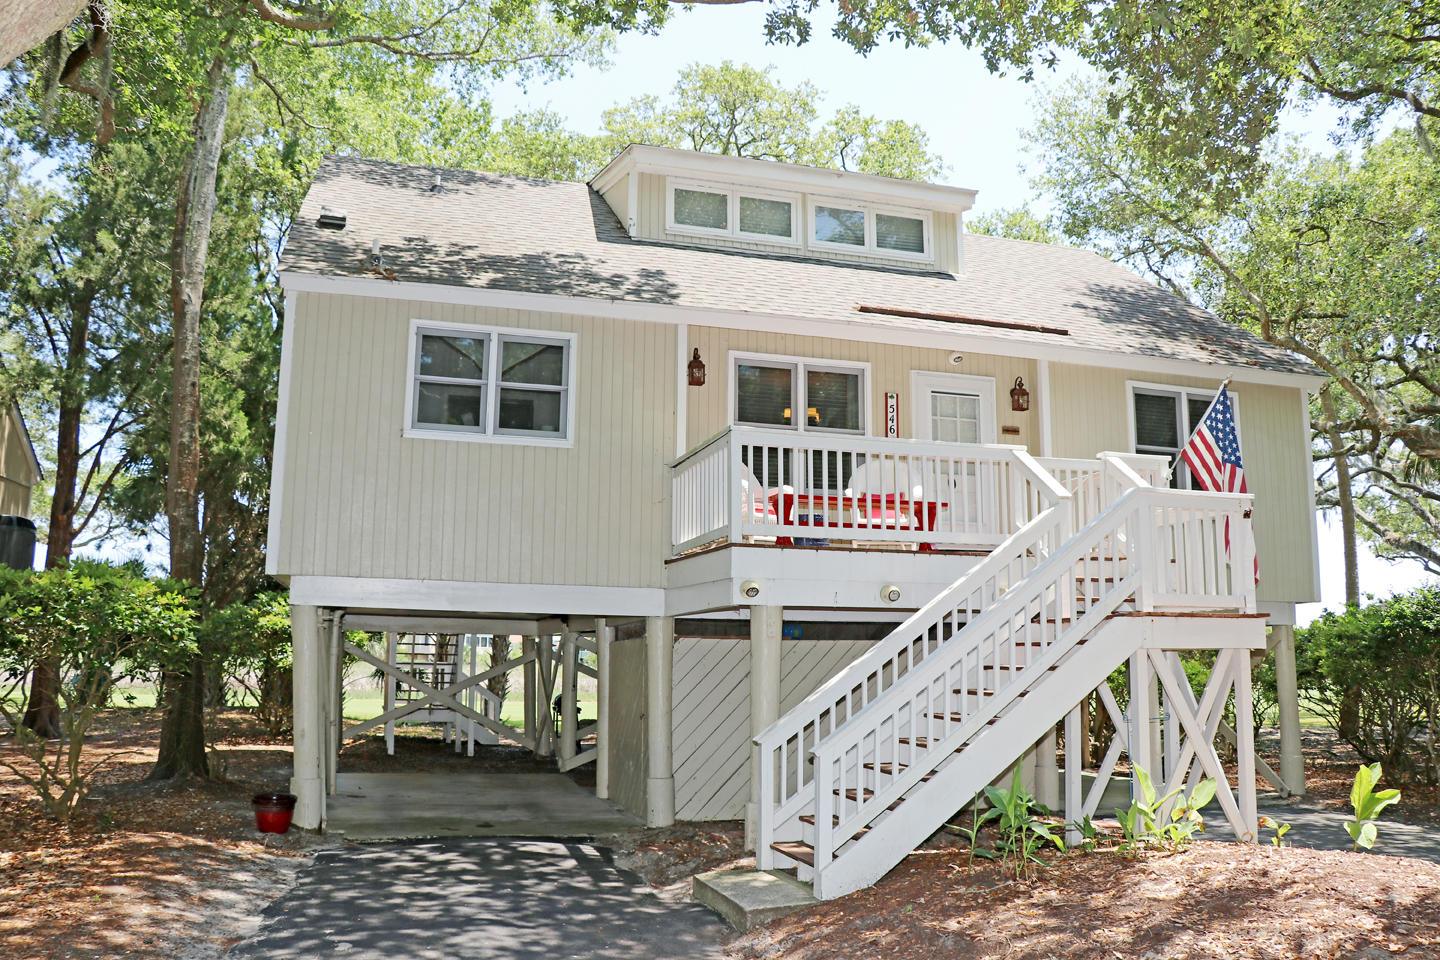 Tarpon Pond Cottages Homes For Sale - 546 Cobby Creek, Seabrook Island, SC - 7